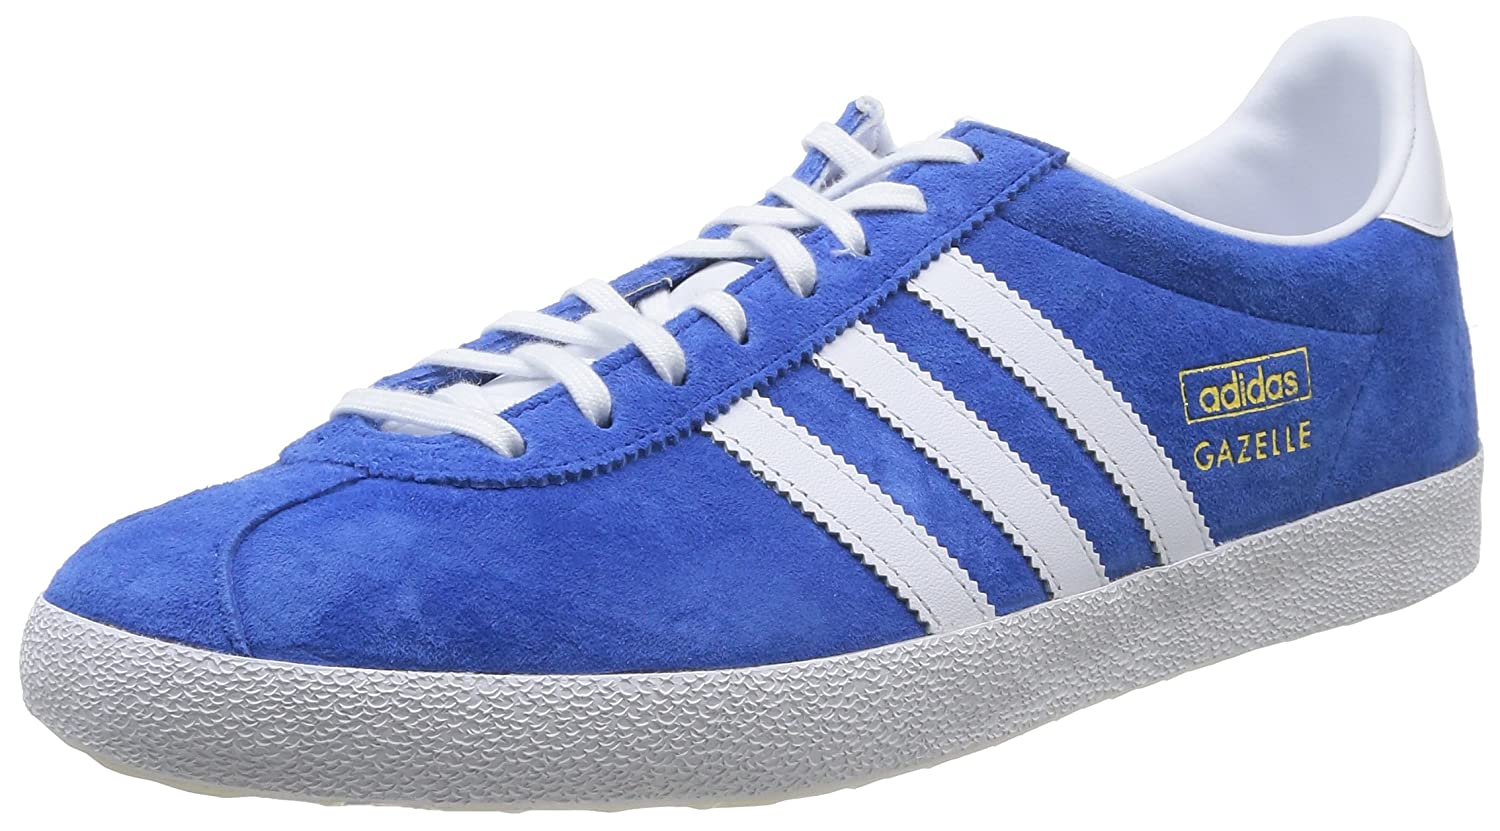 adidas gazelle blue suede mens black adidas gazelle trainers